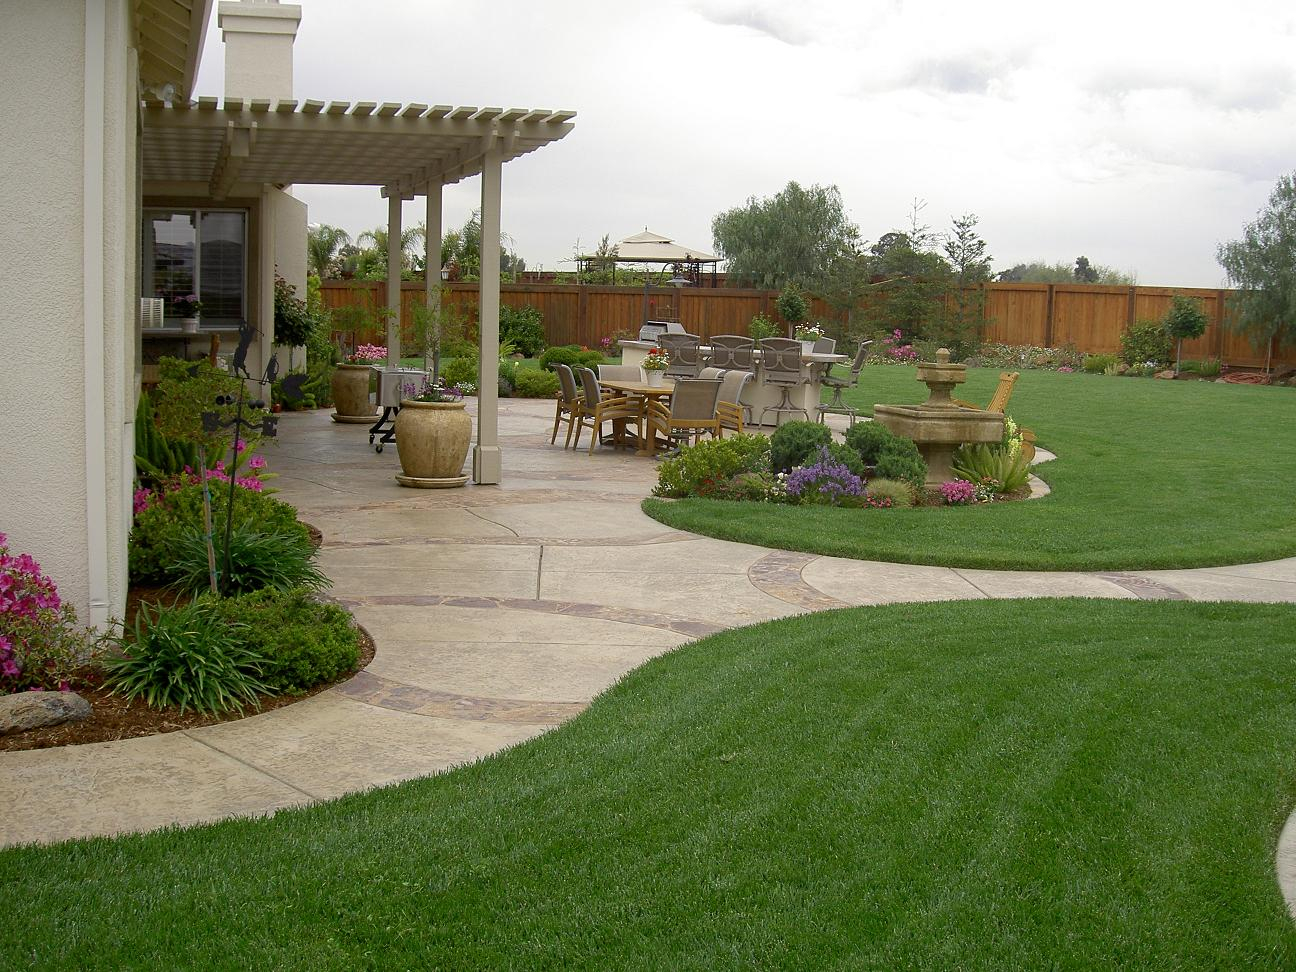 The Best Backyard Landscaping Designs Credible Home Decor inside How To Design Backyard Landscape